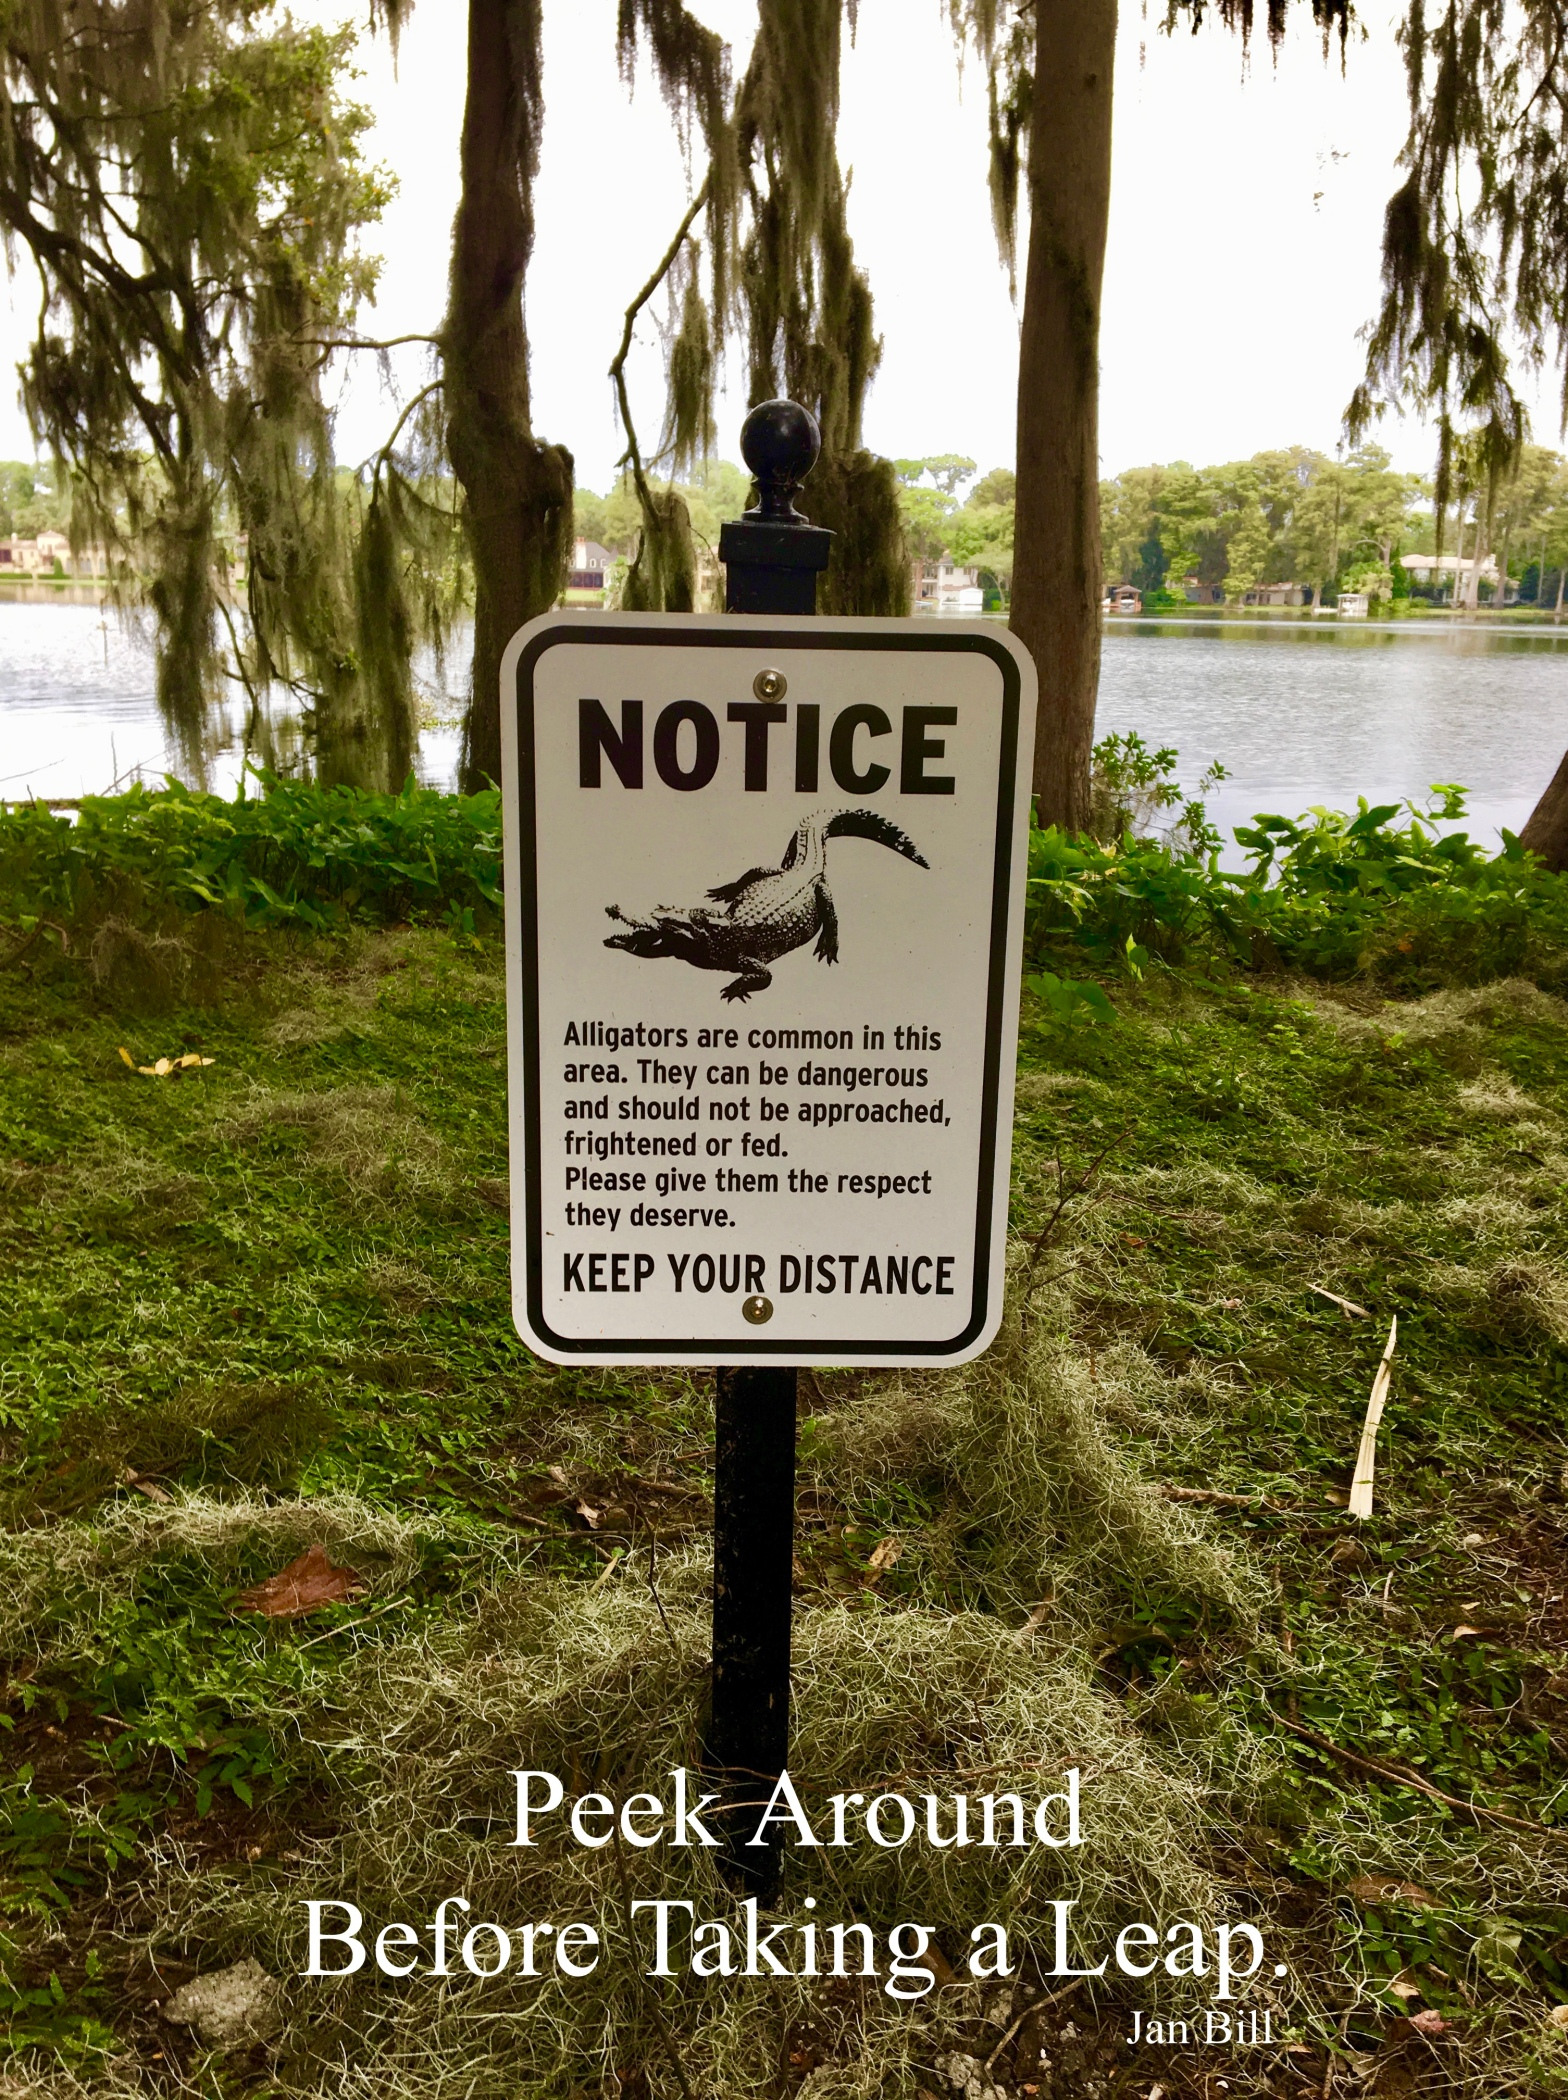 image of sign warning about alligators